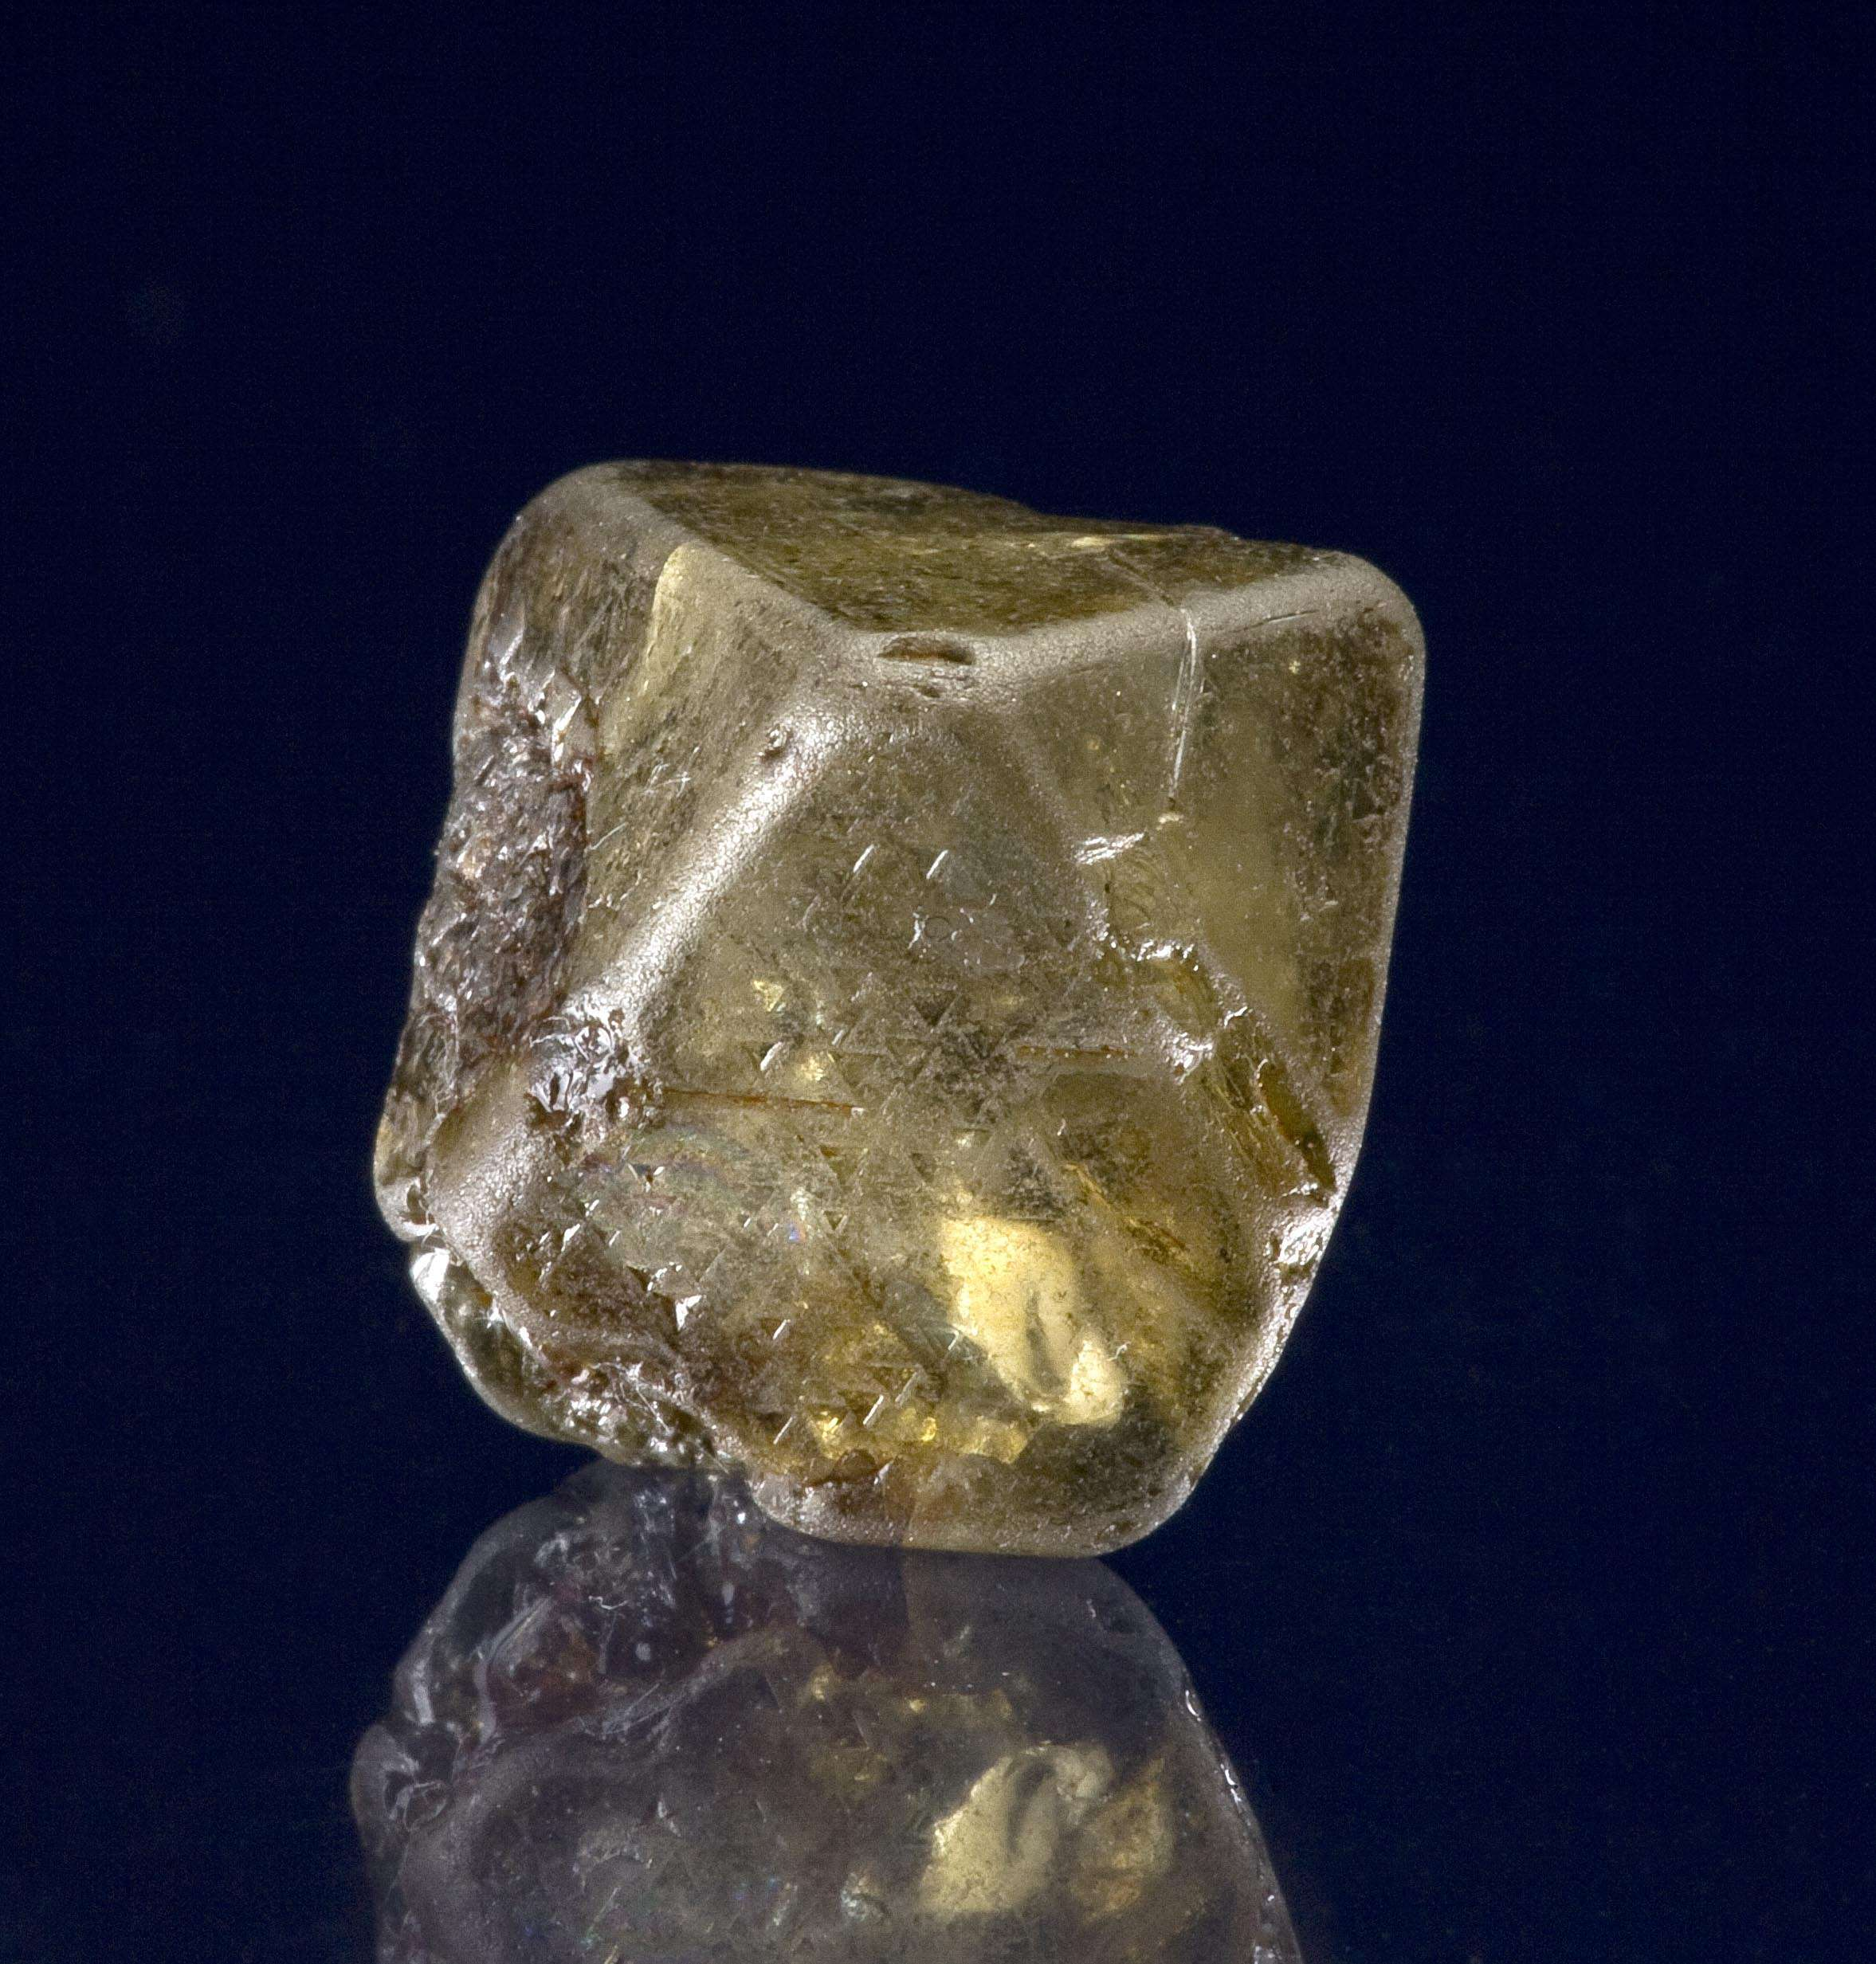 This large natural diamond nearly inch widest tip tip It weighs 42 3